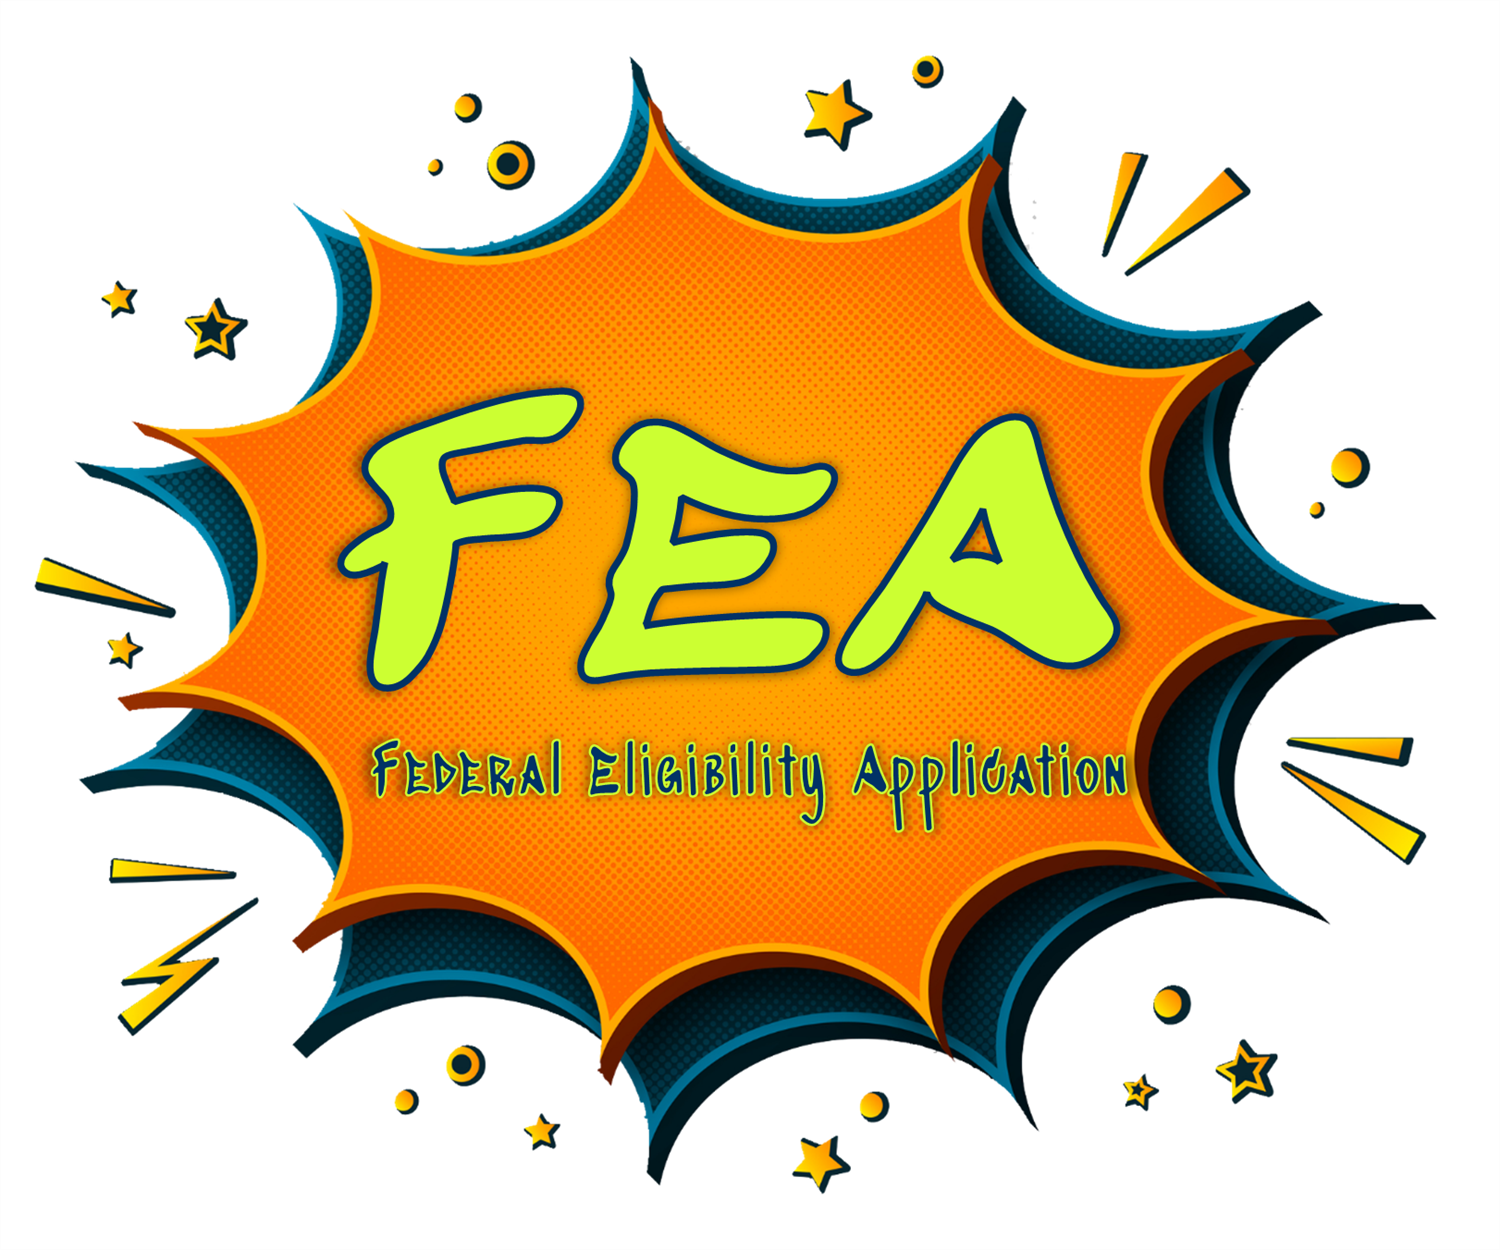 21 Schools Participating Federal Eligibility Application (FEA)